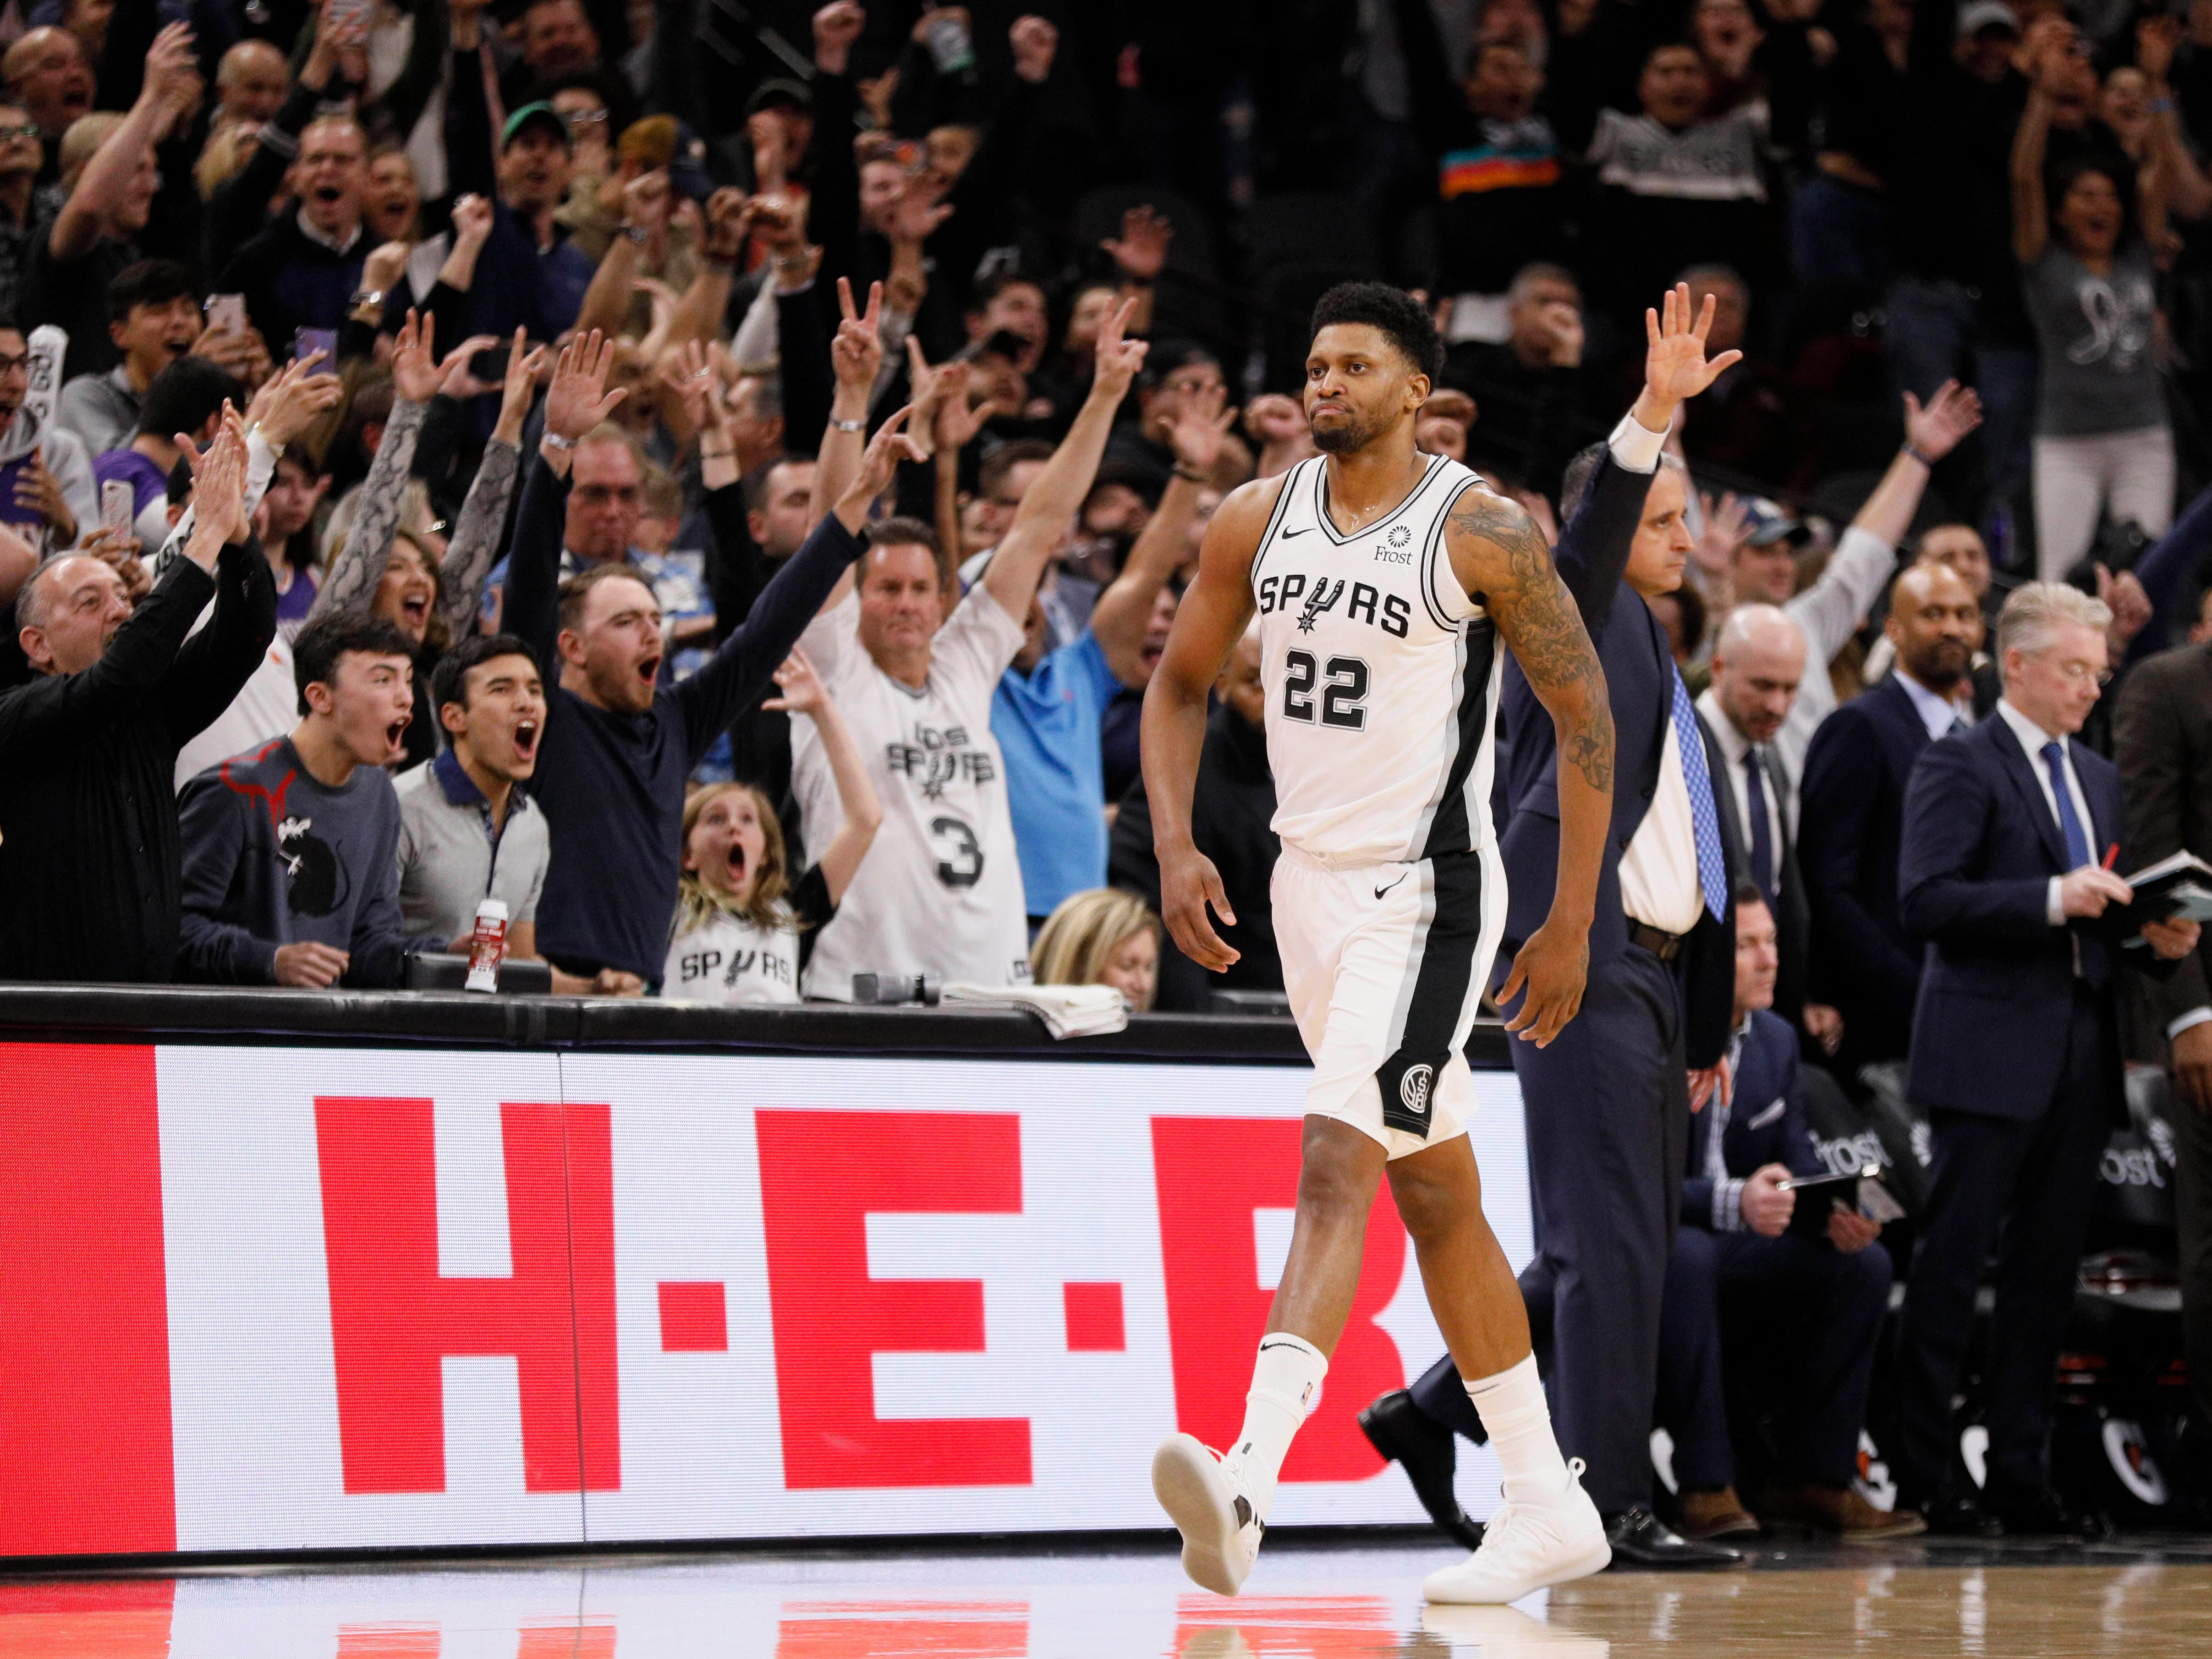 Jan 29, 2019: San Antonio Spurs small forward Rudy Gay (22) reacts after making the game-winning basket at the buzzer during the second half against the Phoenix Suns at AT&T Center.